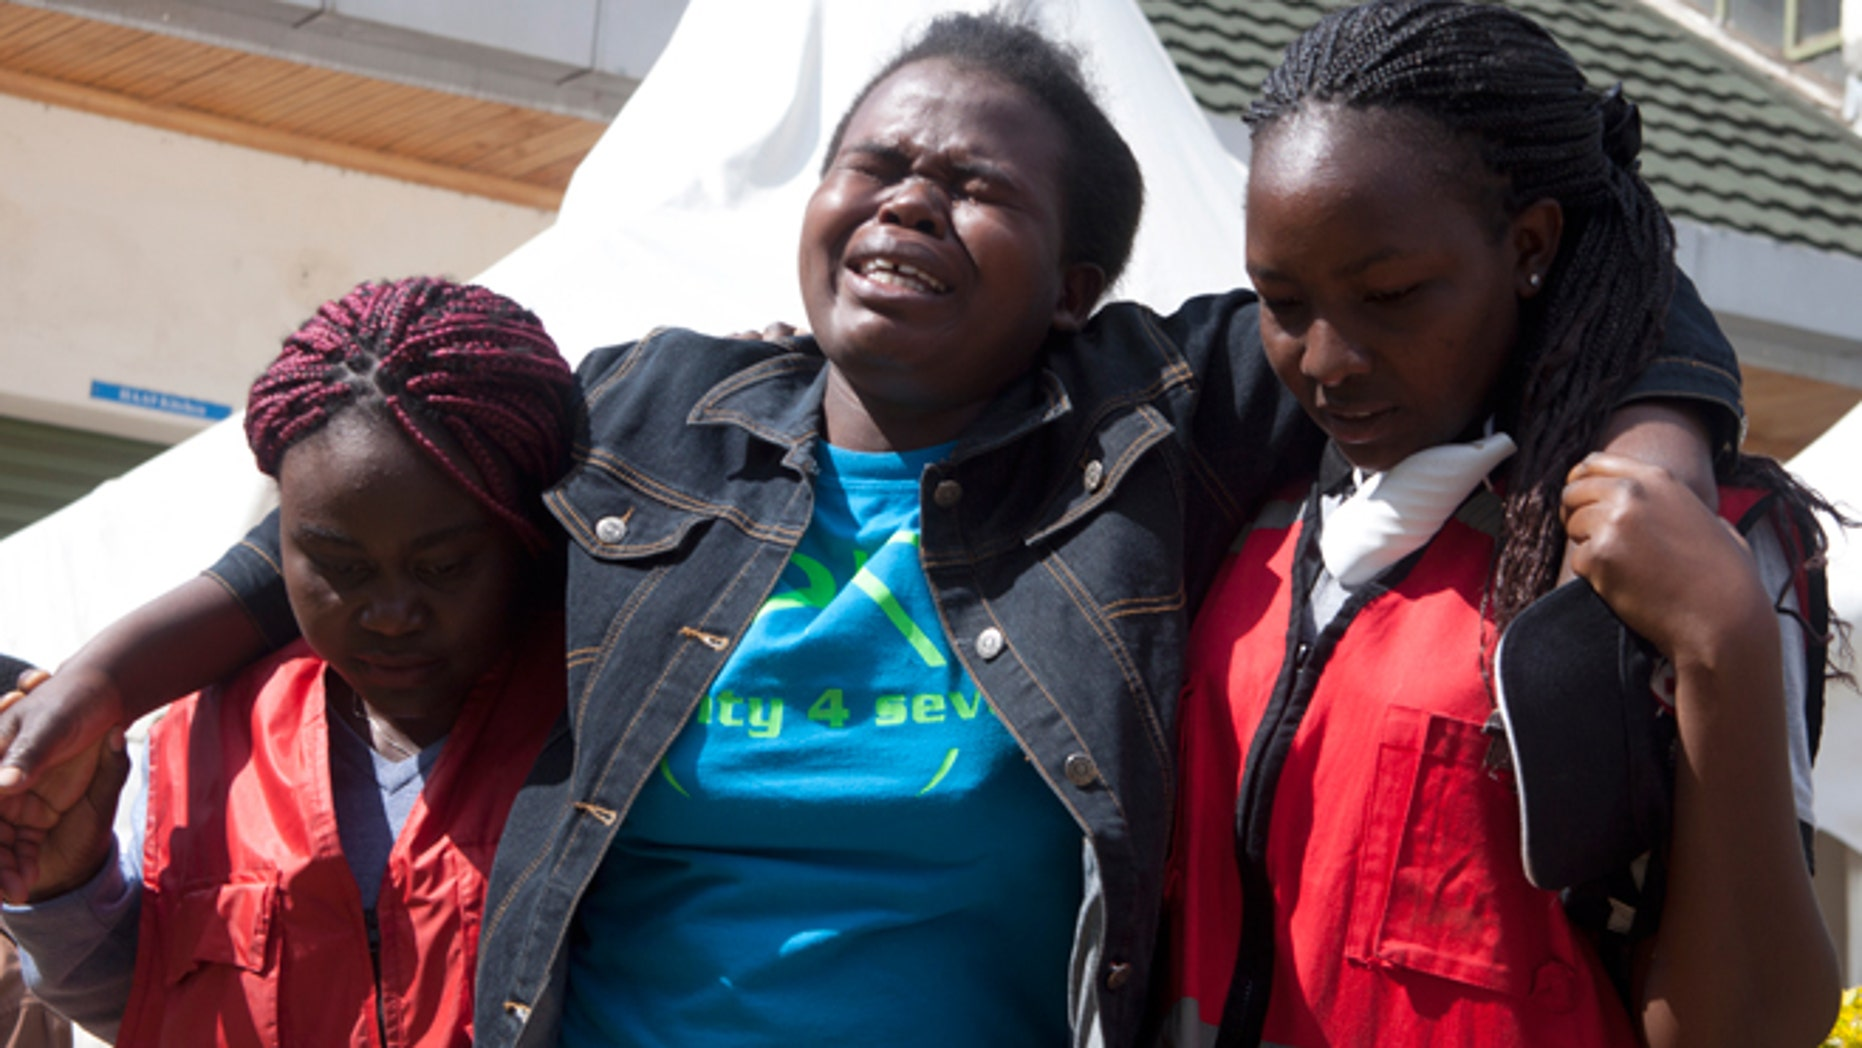 April 8, 2015: Kenya Red Cross staff help a woman after she viewed the body of a relative killed in last Thursday's attack on Garissa University College in northeastern Kenya, at Chiromo funeral home, Nairobi, Kenya.  Al-Shabab gunmen rampaged through the university at dawn Thursday, killing over 140 people in the group's deadliest attack in the East African country.